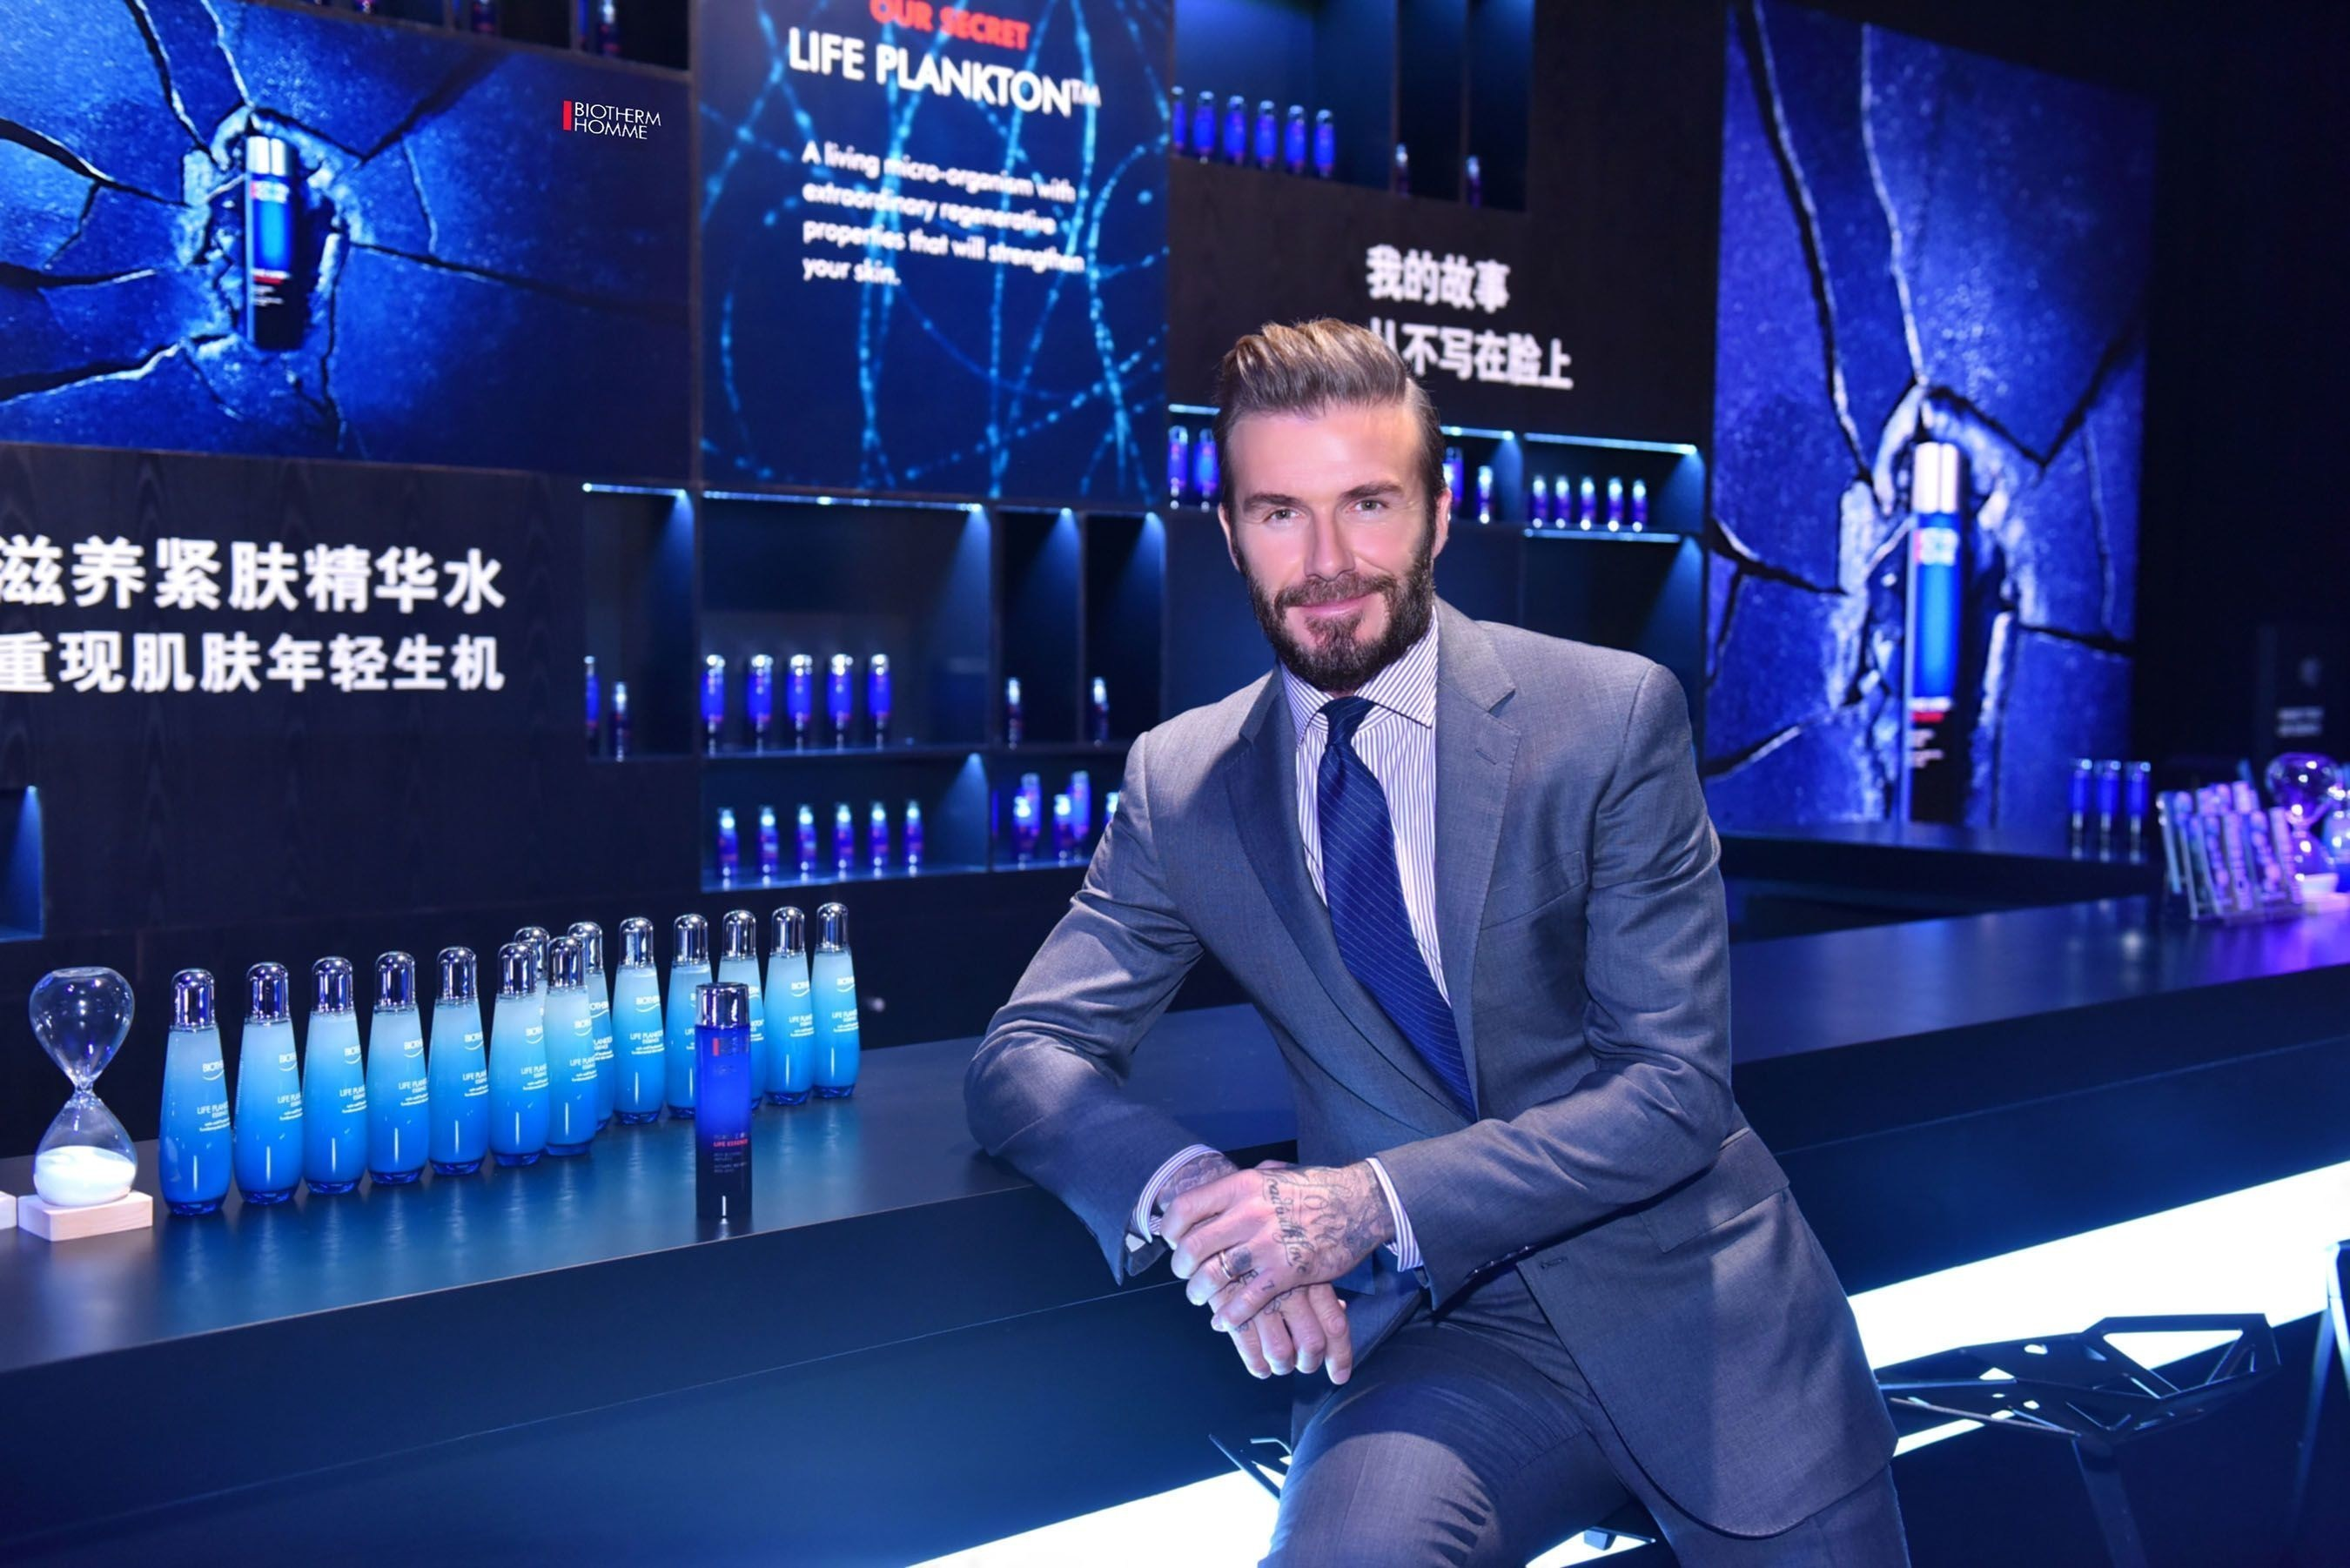 Biotherm Homme & David Beckham Host a Digital Experience in Shanghai to Present the Force Supreme Range